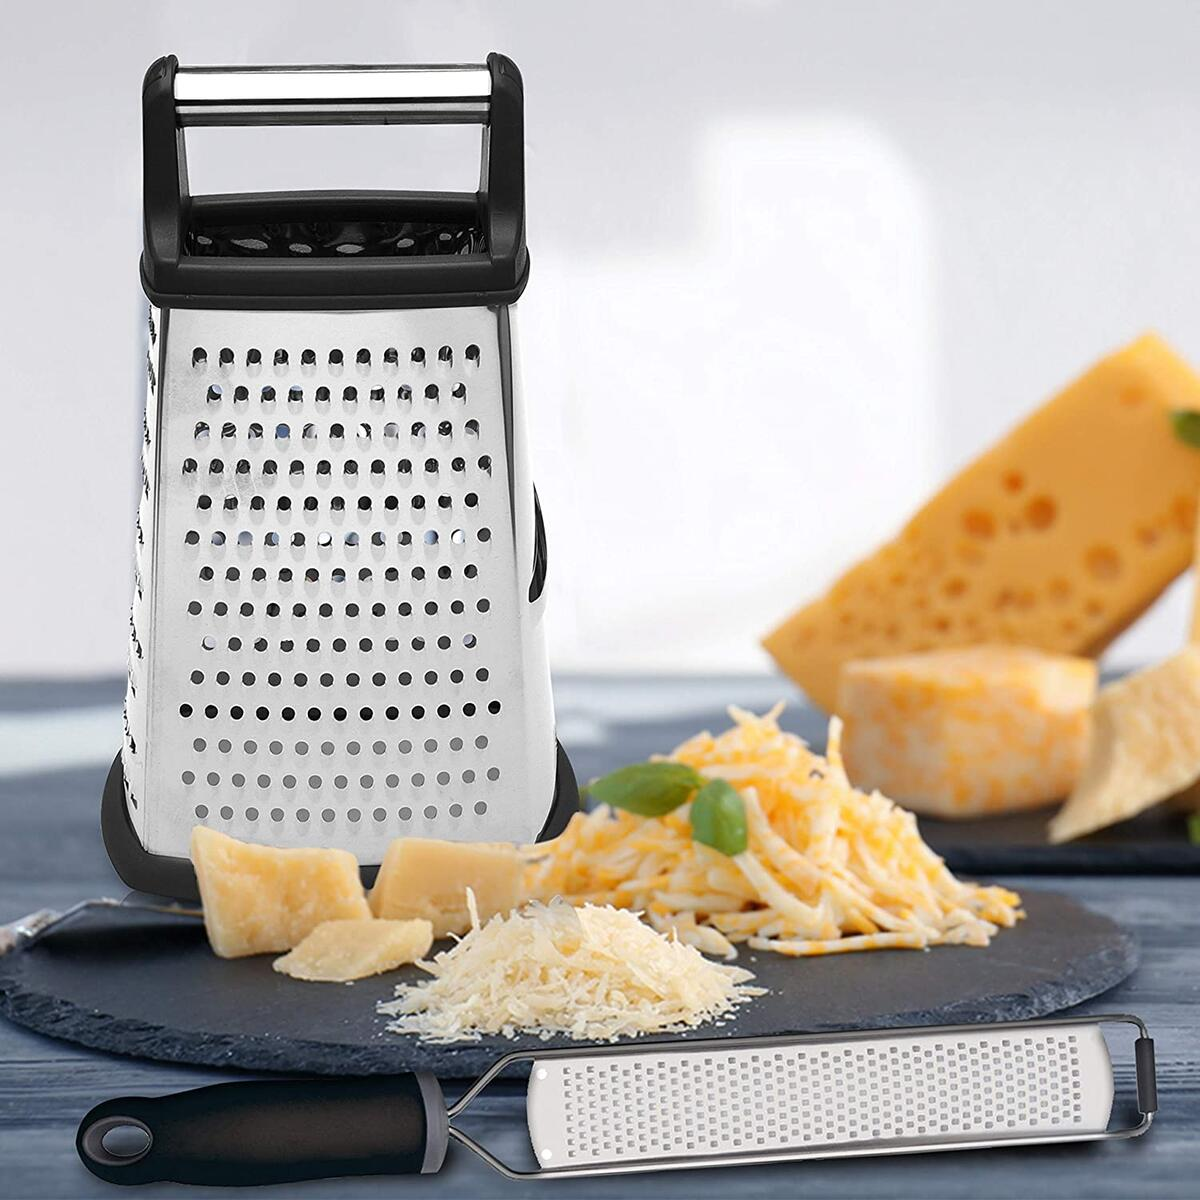 Box Grater Zester & Peeler Stainless Steel Kitchen Tools Set for Cheese, Lemon, Nutmeg, Fruits, Vegetables, Ginger, Cinnamon, Potato, Coconut - Durable, Dish washer and BPA Free